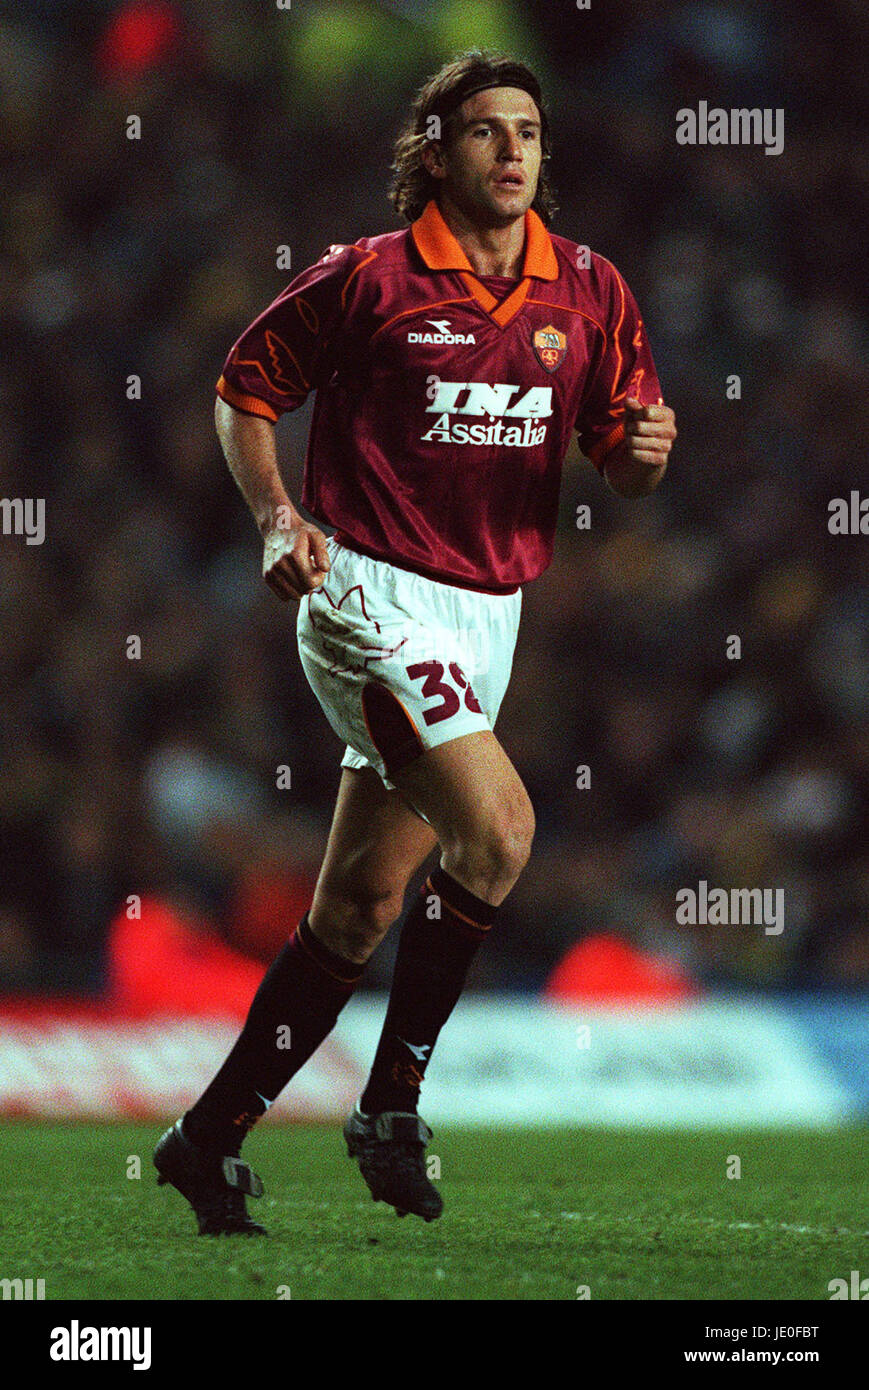 VINCENT CANDELA AS ROMA 09 March 2000 - Stock Image